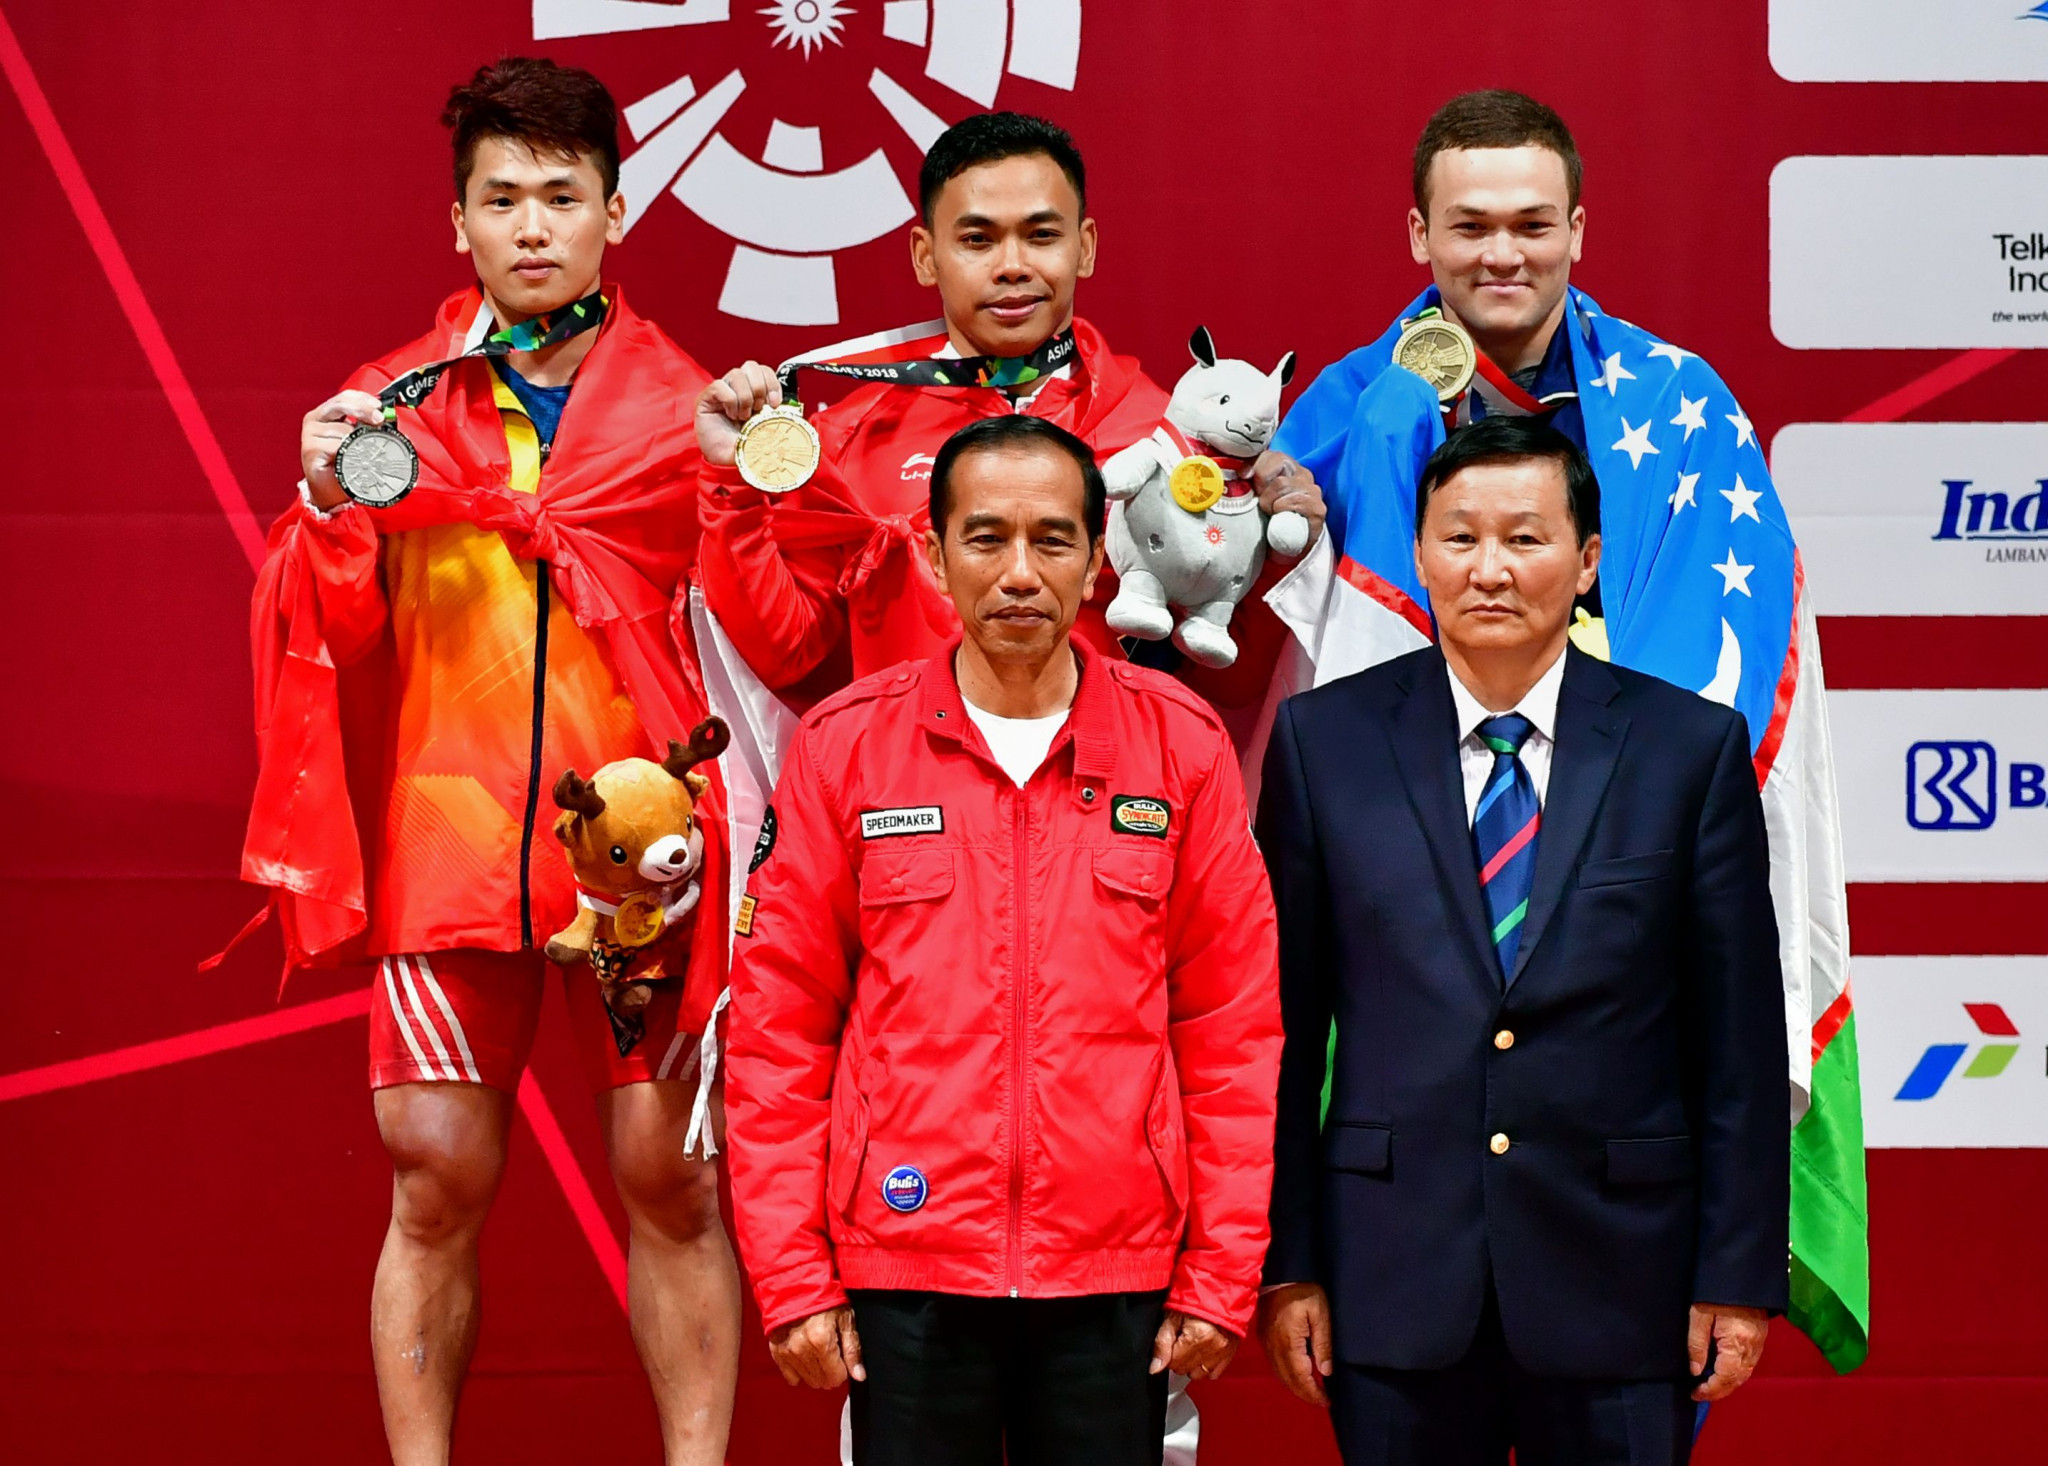 Indonesia President watches on as home favourite Irawan claims weightlifting gold at 2018 Asian Games